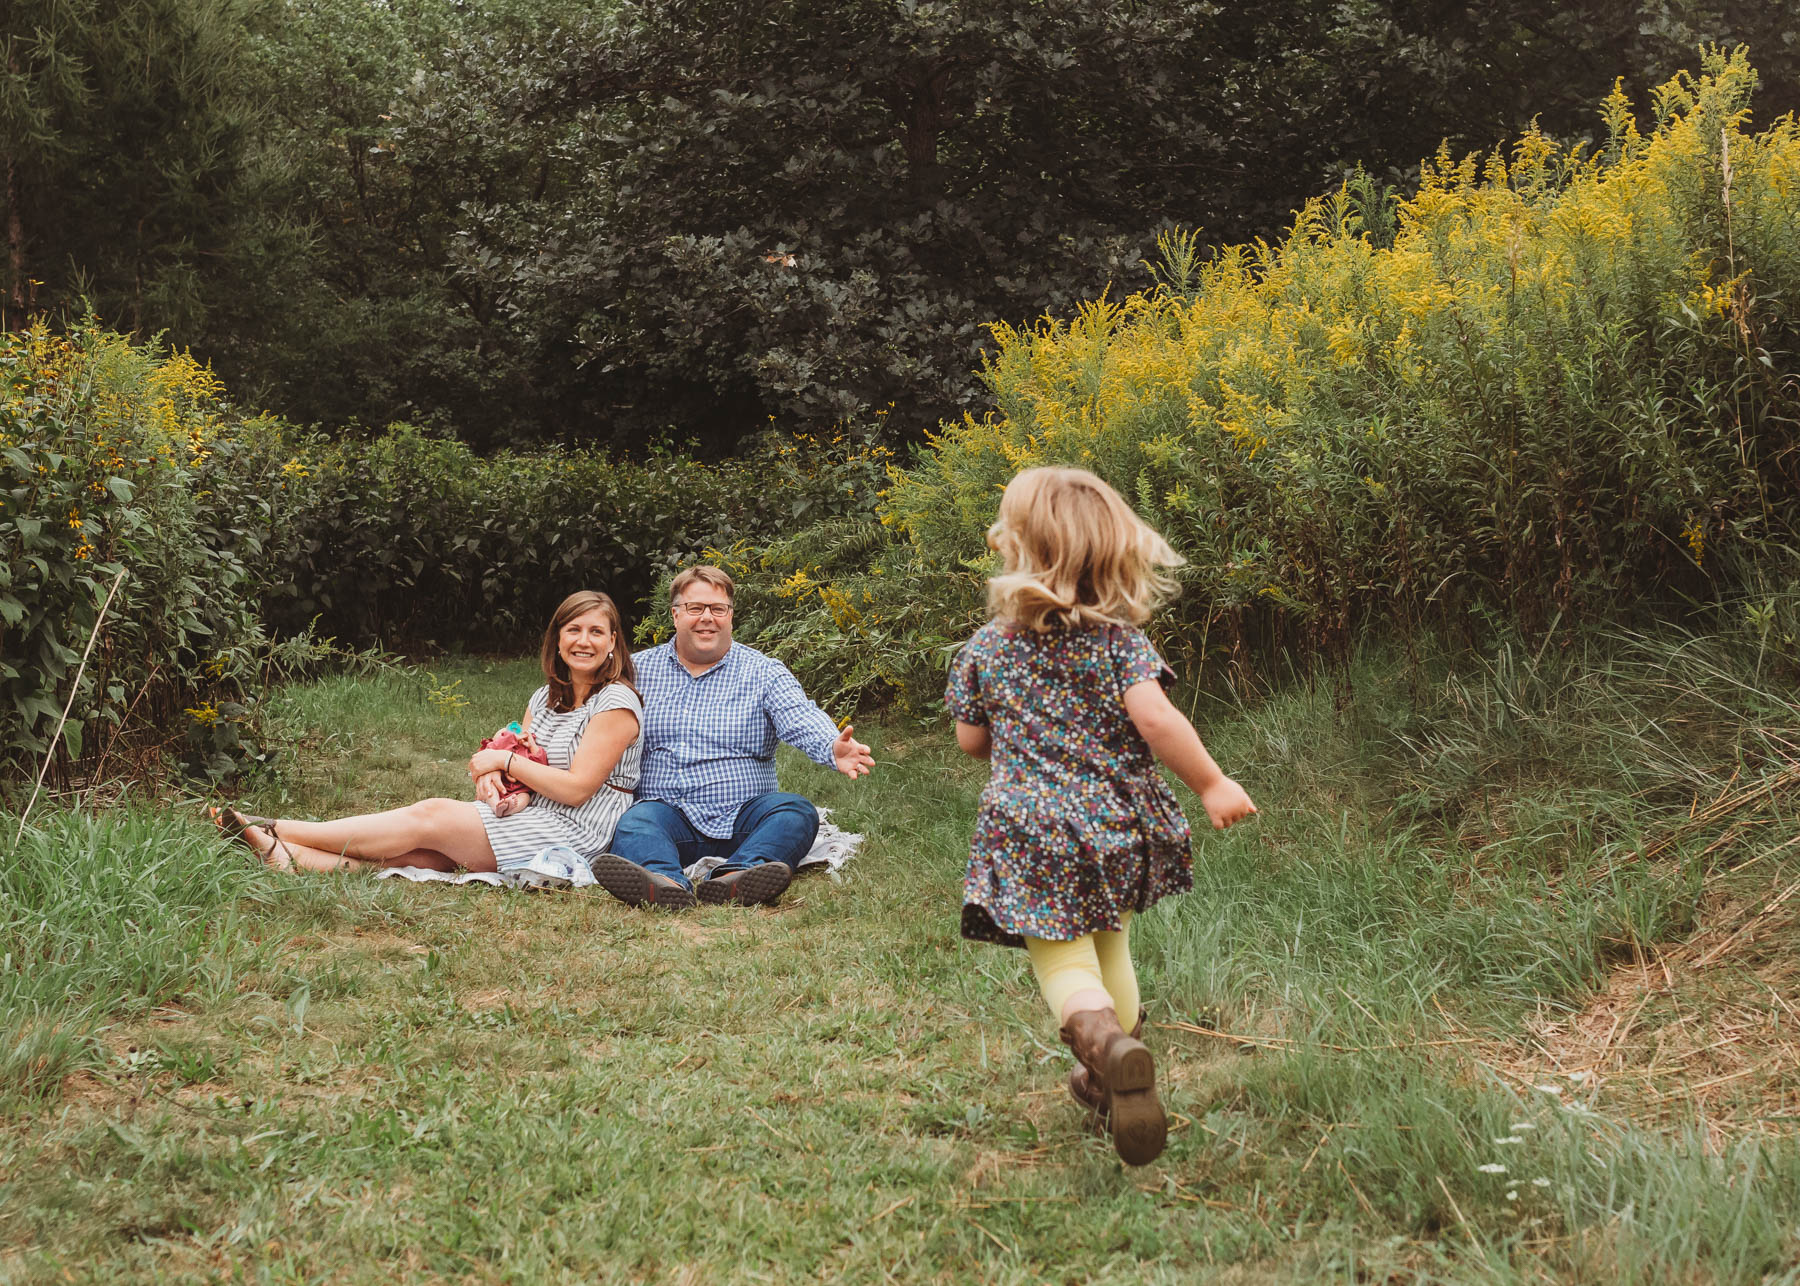 Sudbury, Massachusetts family chose to do an indoor/outdoor newborn session to welcome their second baby girl! This spot in Carlisle at Great Brook Farm is just one of many gorgeous spots for Greater Boston family photos. Lifestyle newborn photography.